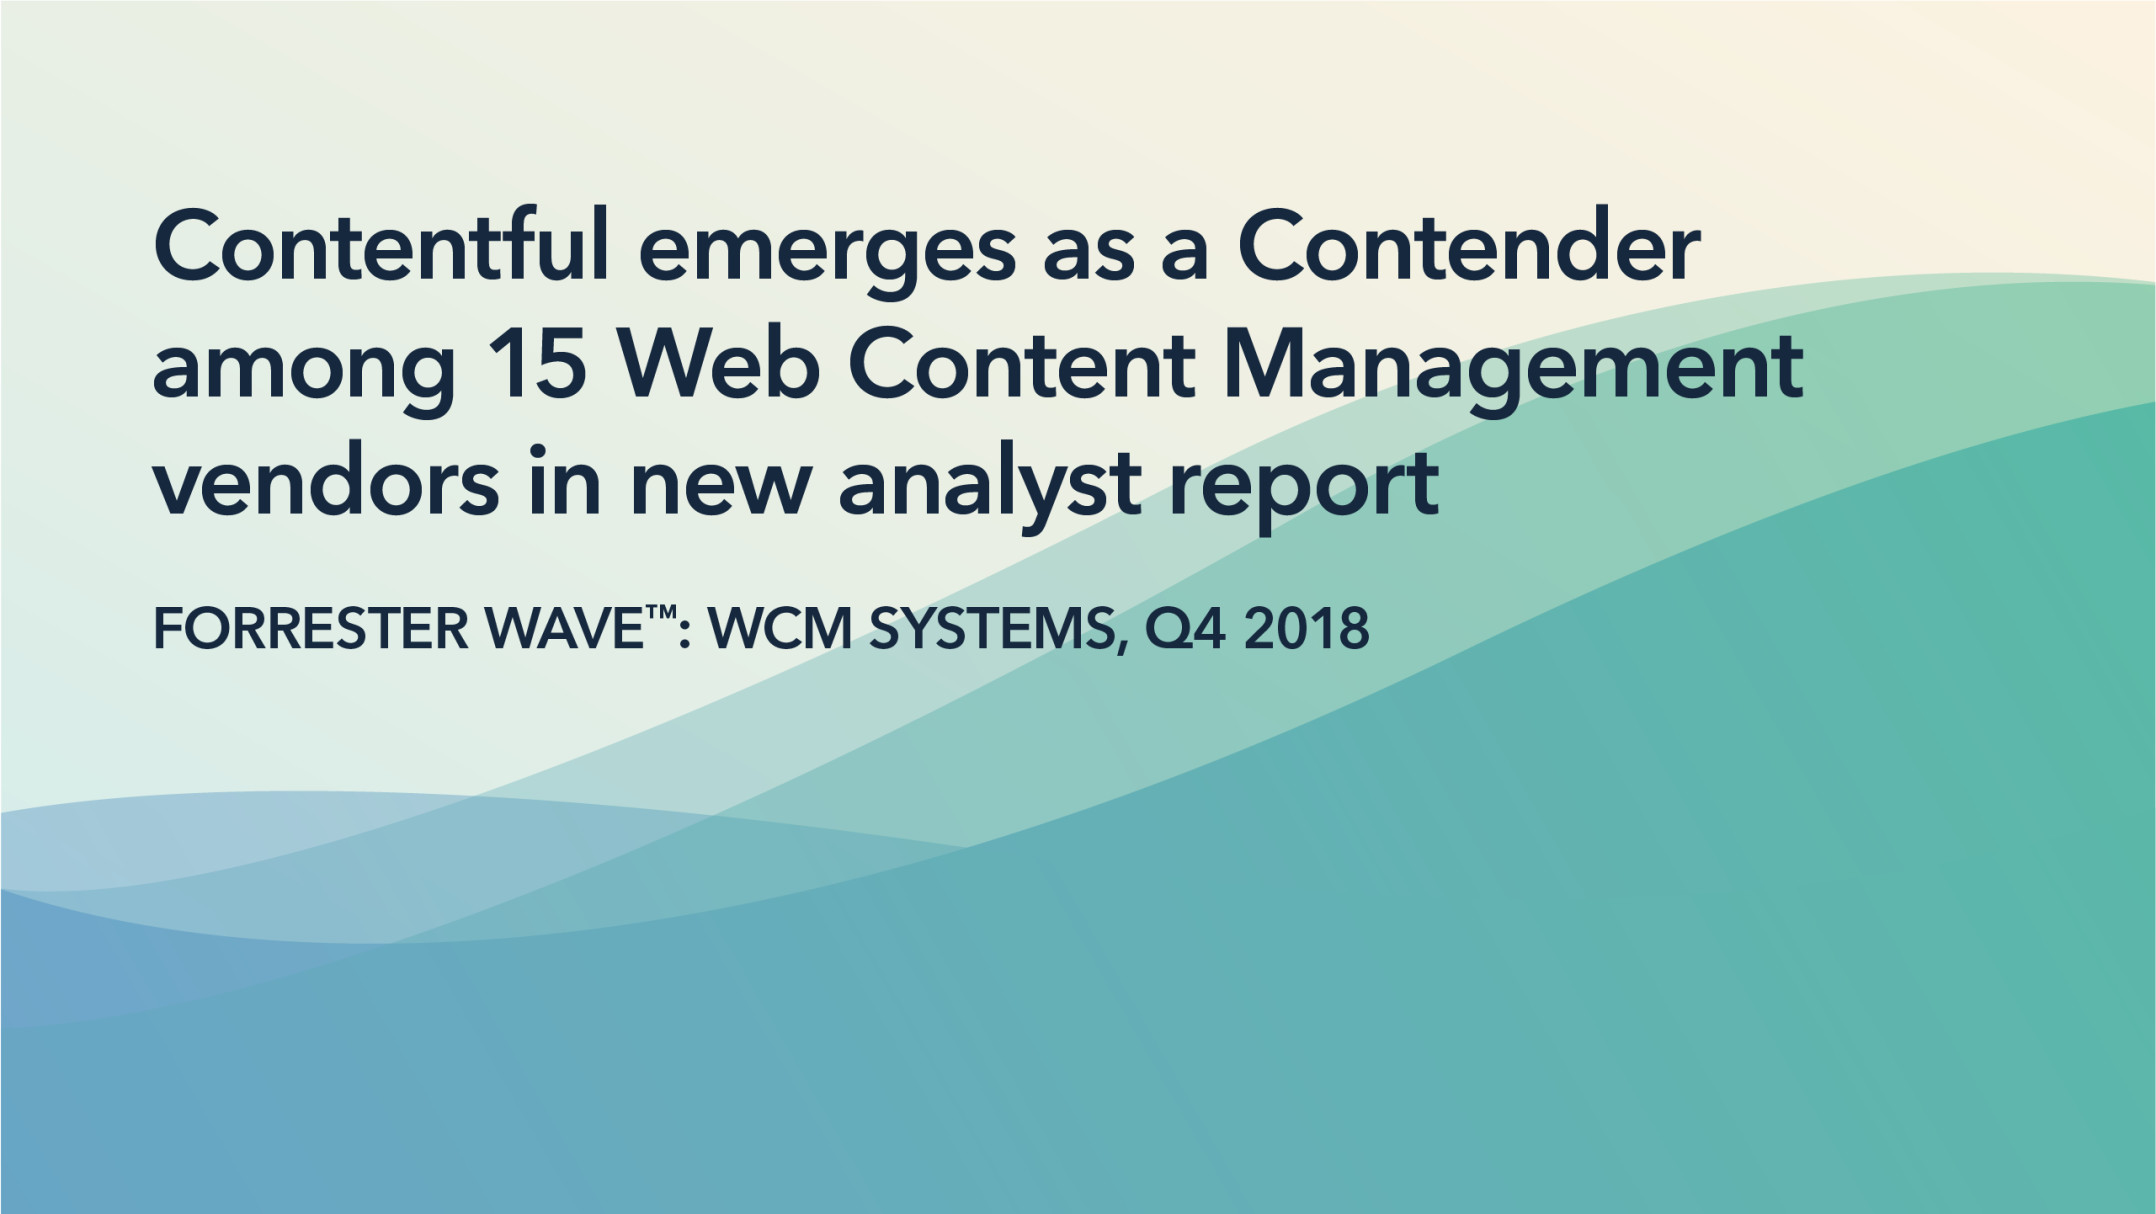 Contentful emerges as a Contender in the 2018 Forrester Wave: Web